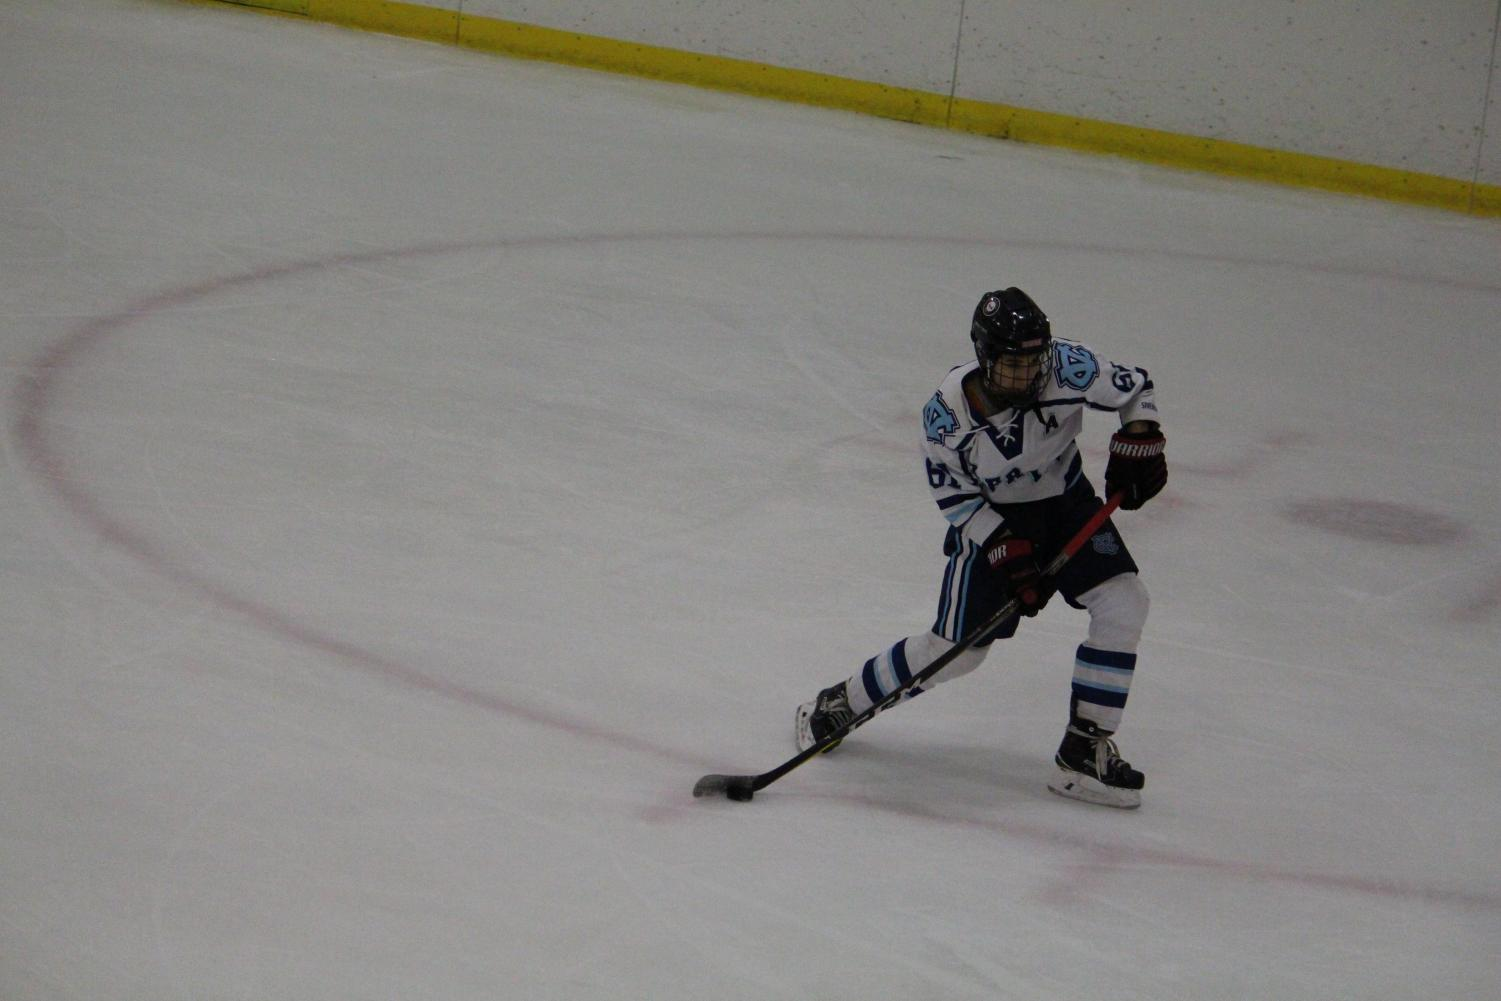 Senior Jimmy Kelly-Tindall winds up a shot to make it 2-0 in the first period against Elizabeth Forward.